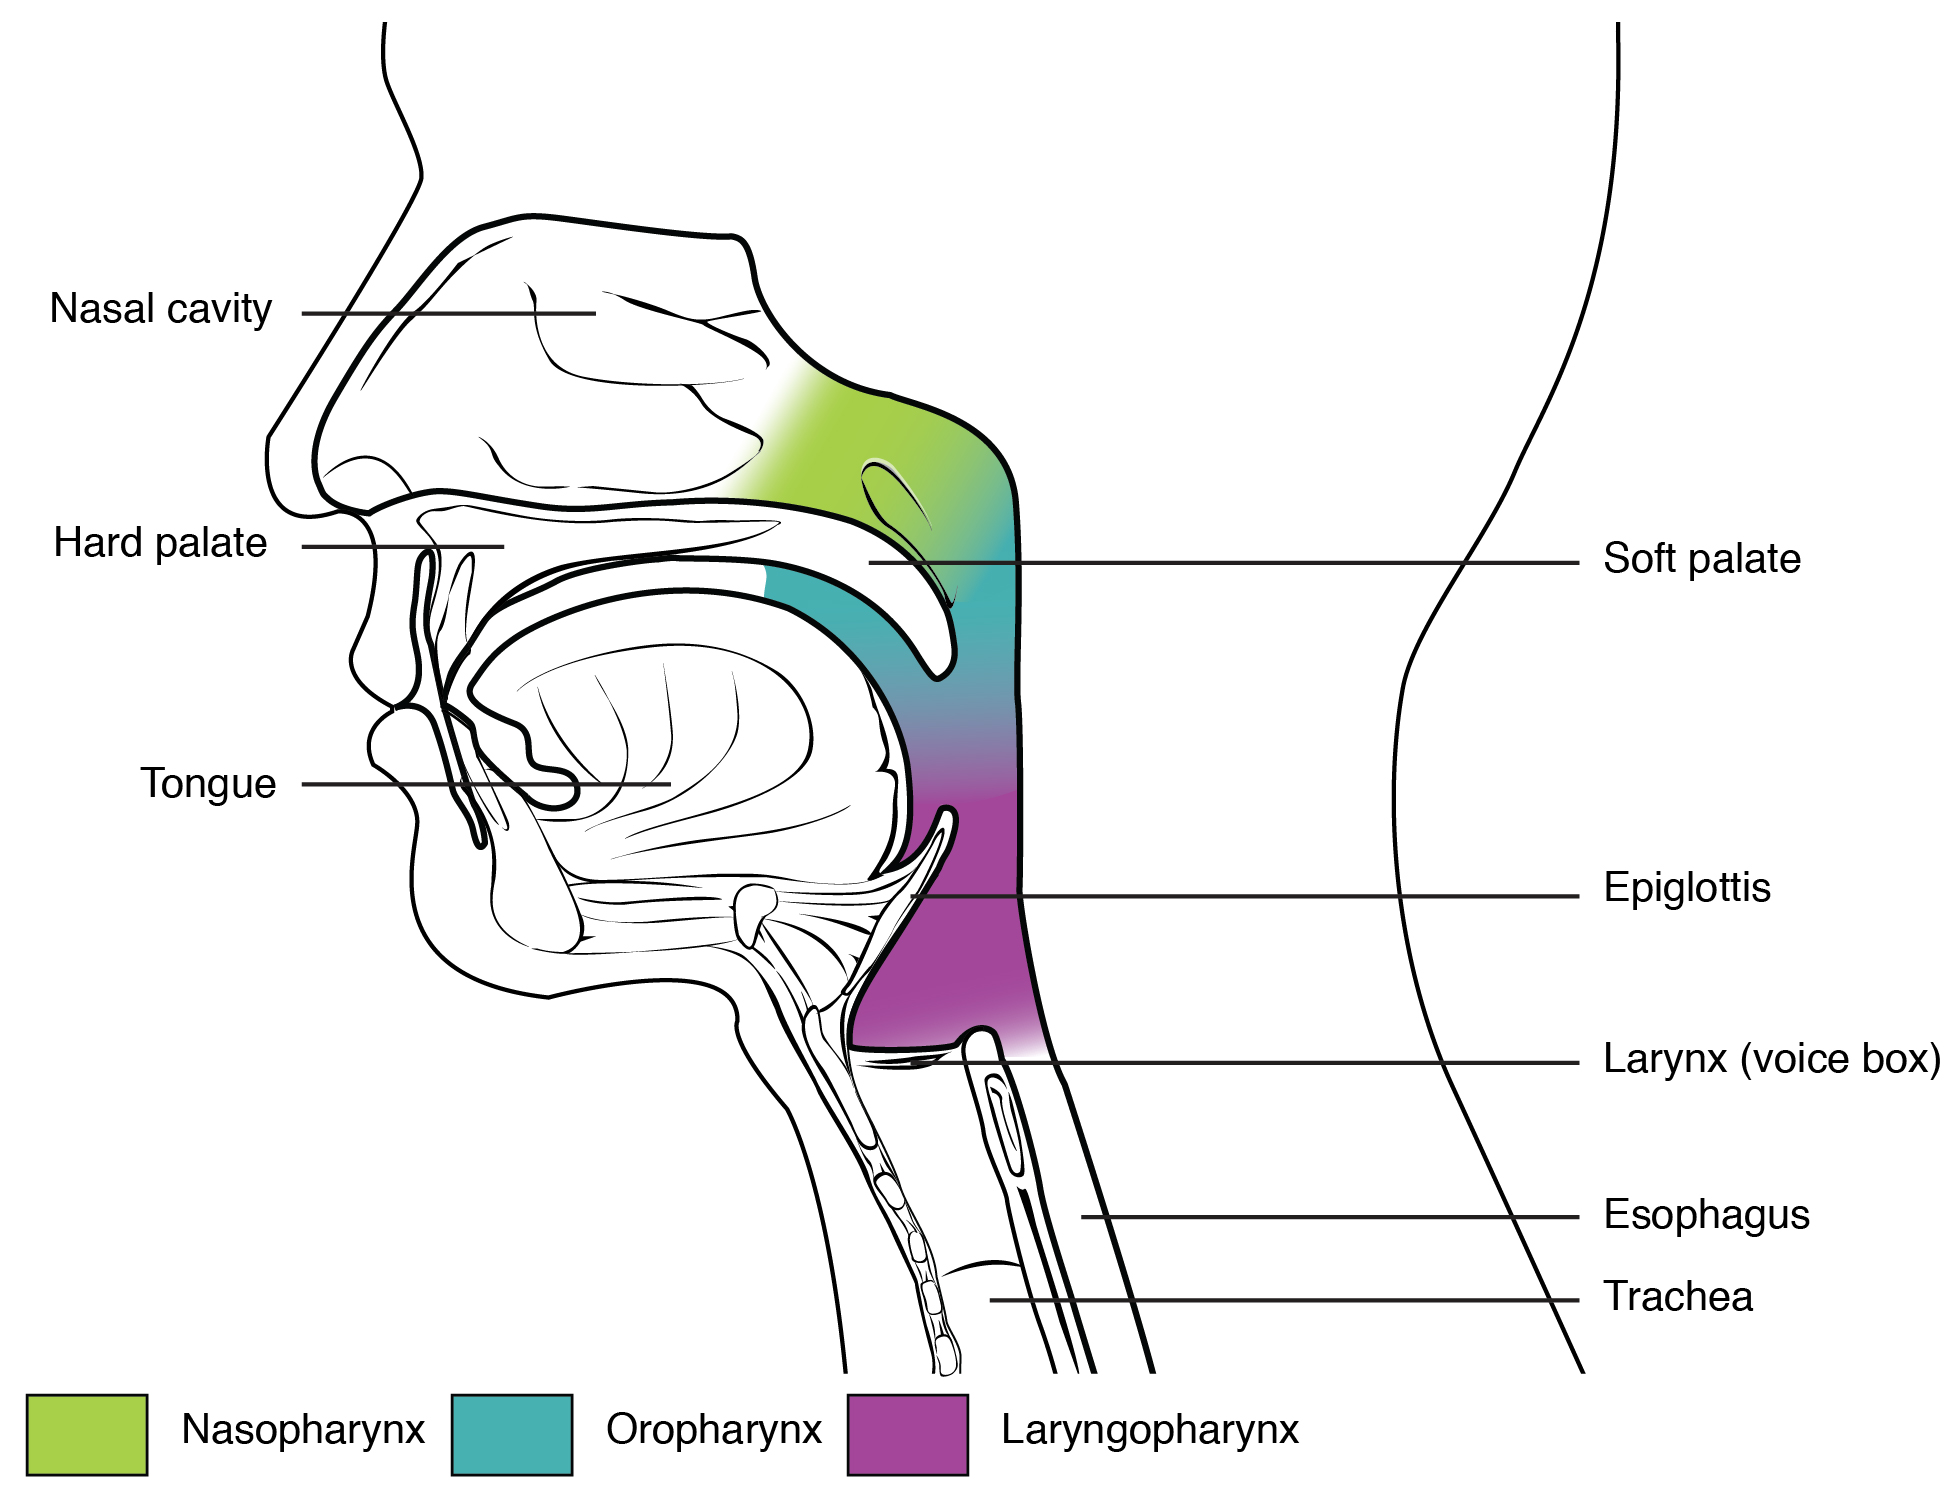 This figure shows the side view of the face. The different parts of the pharynx are color-coded and labeled.